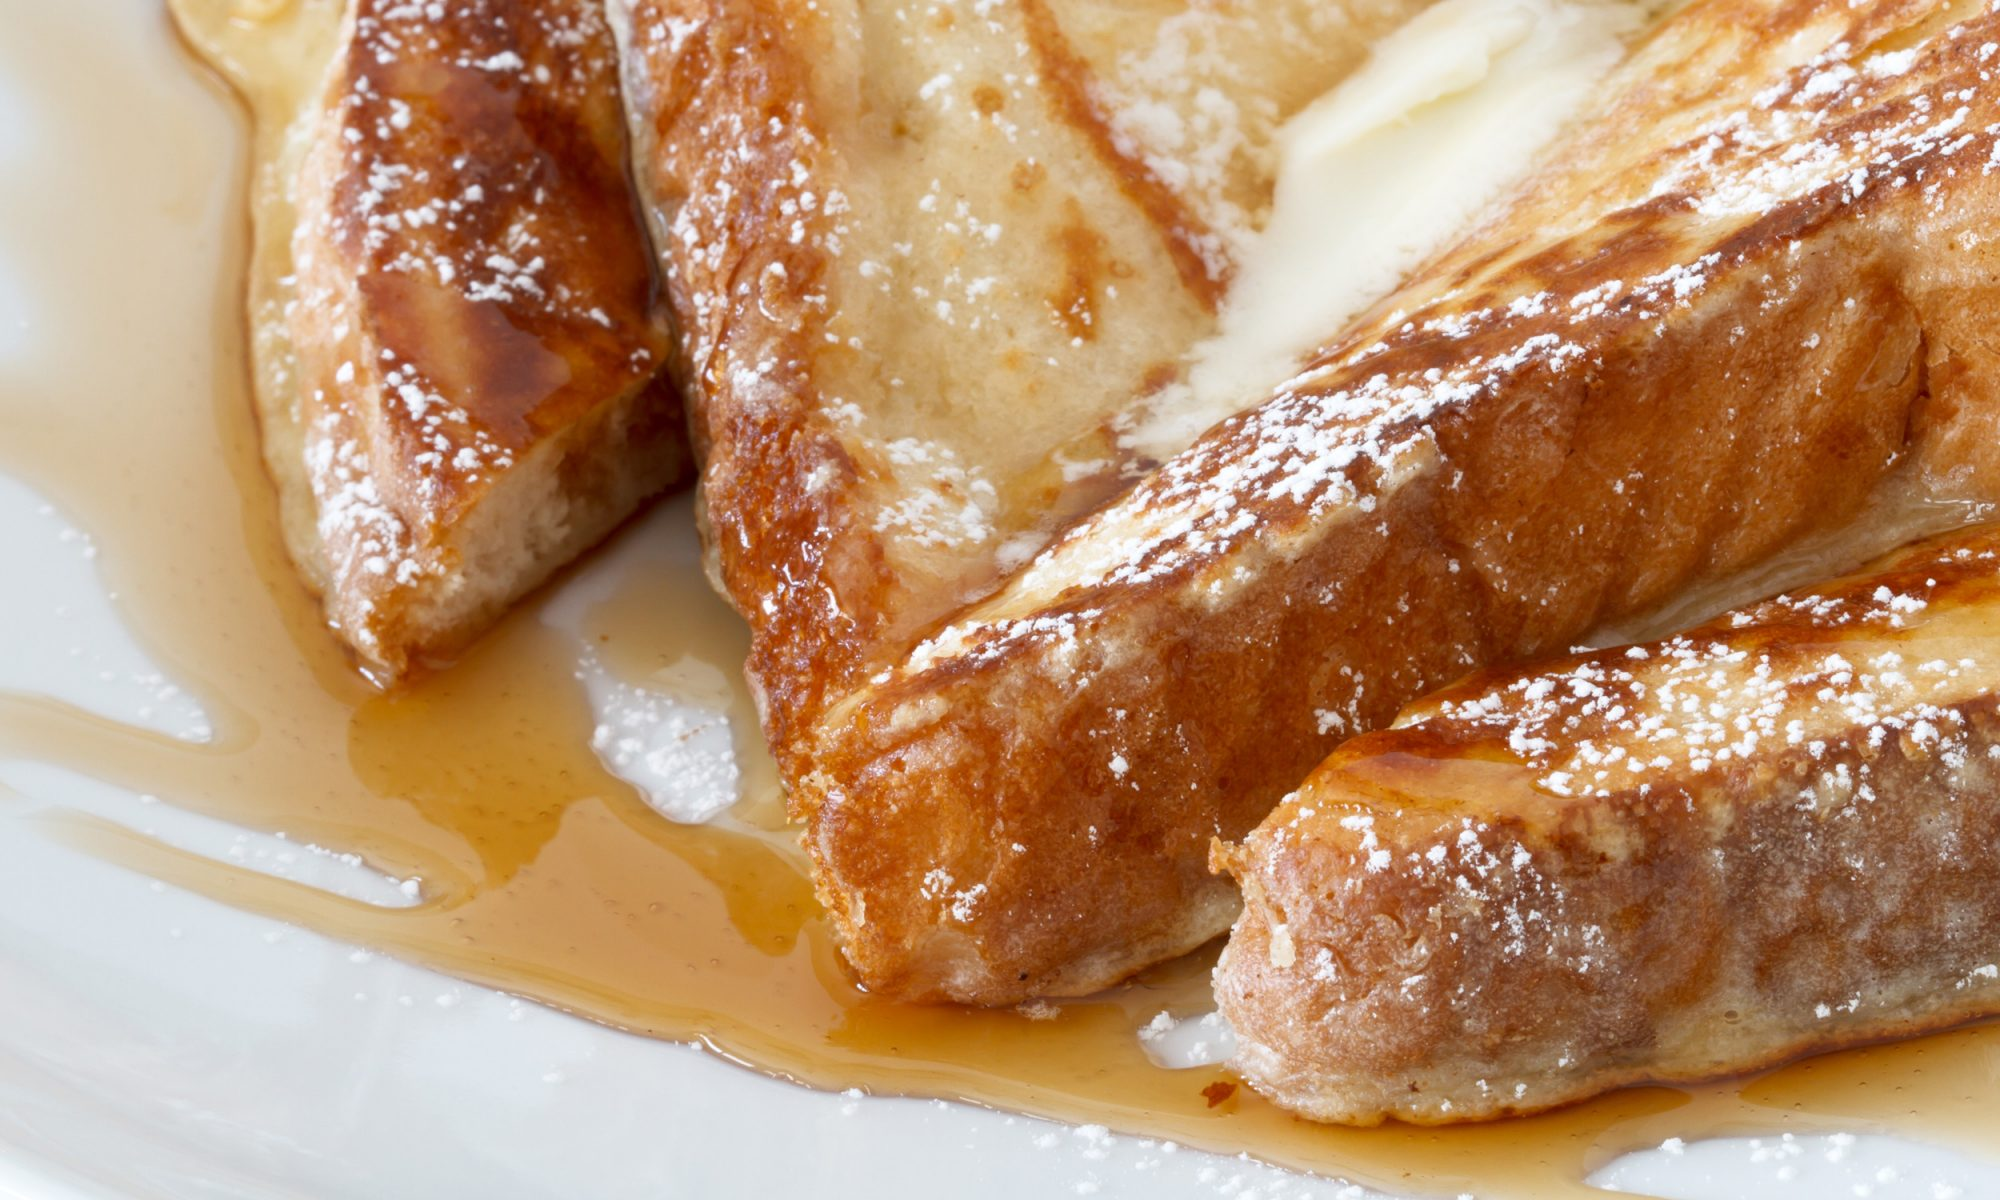 Slow Cooker French Toast Is the Laid Back Way to Feed Your Friends a Fancy Brunch